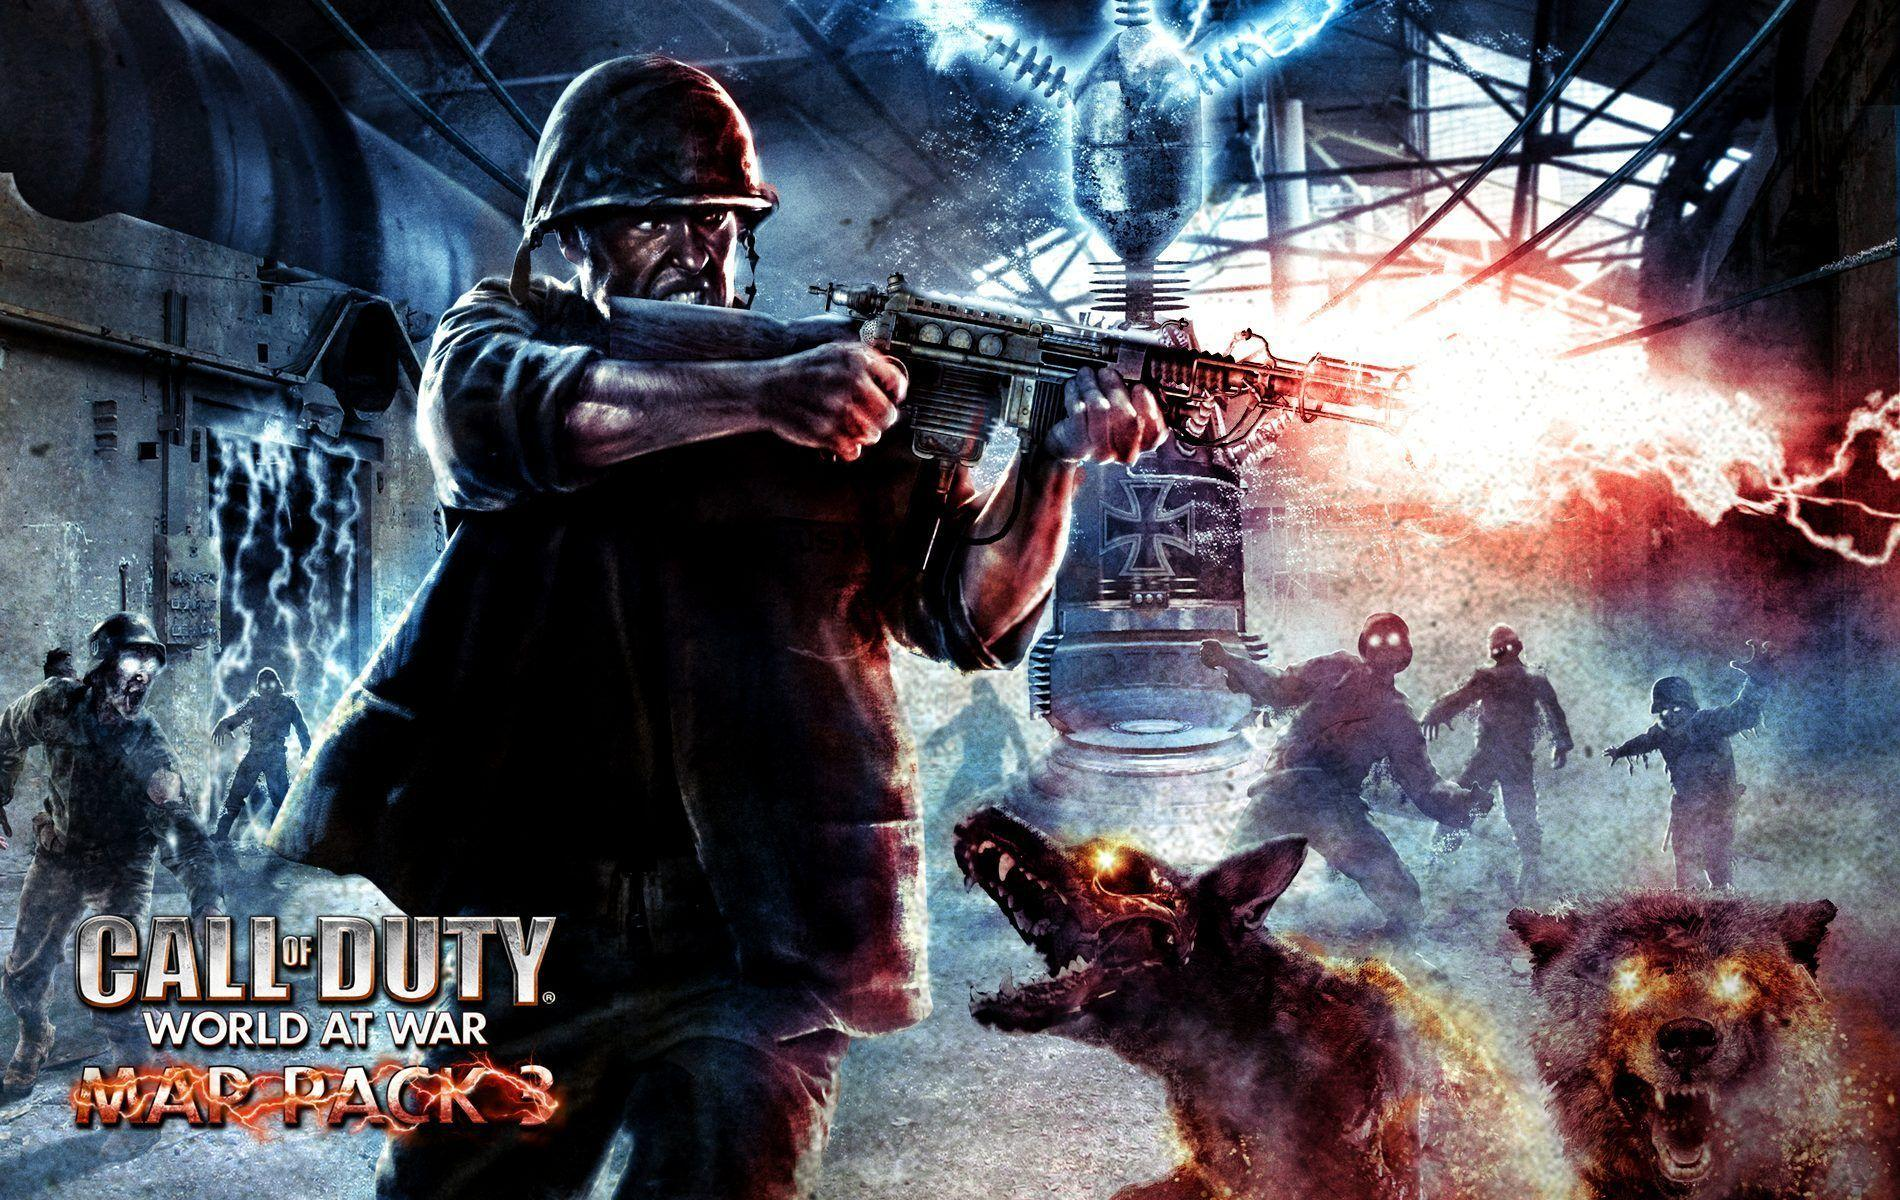 Black Ops Zombies Wallpapers 1080p Wallpaper Cave